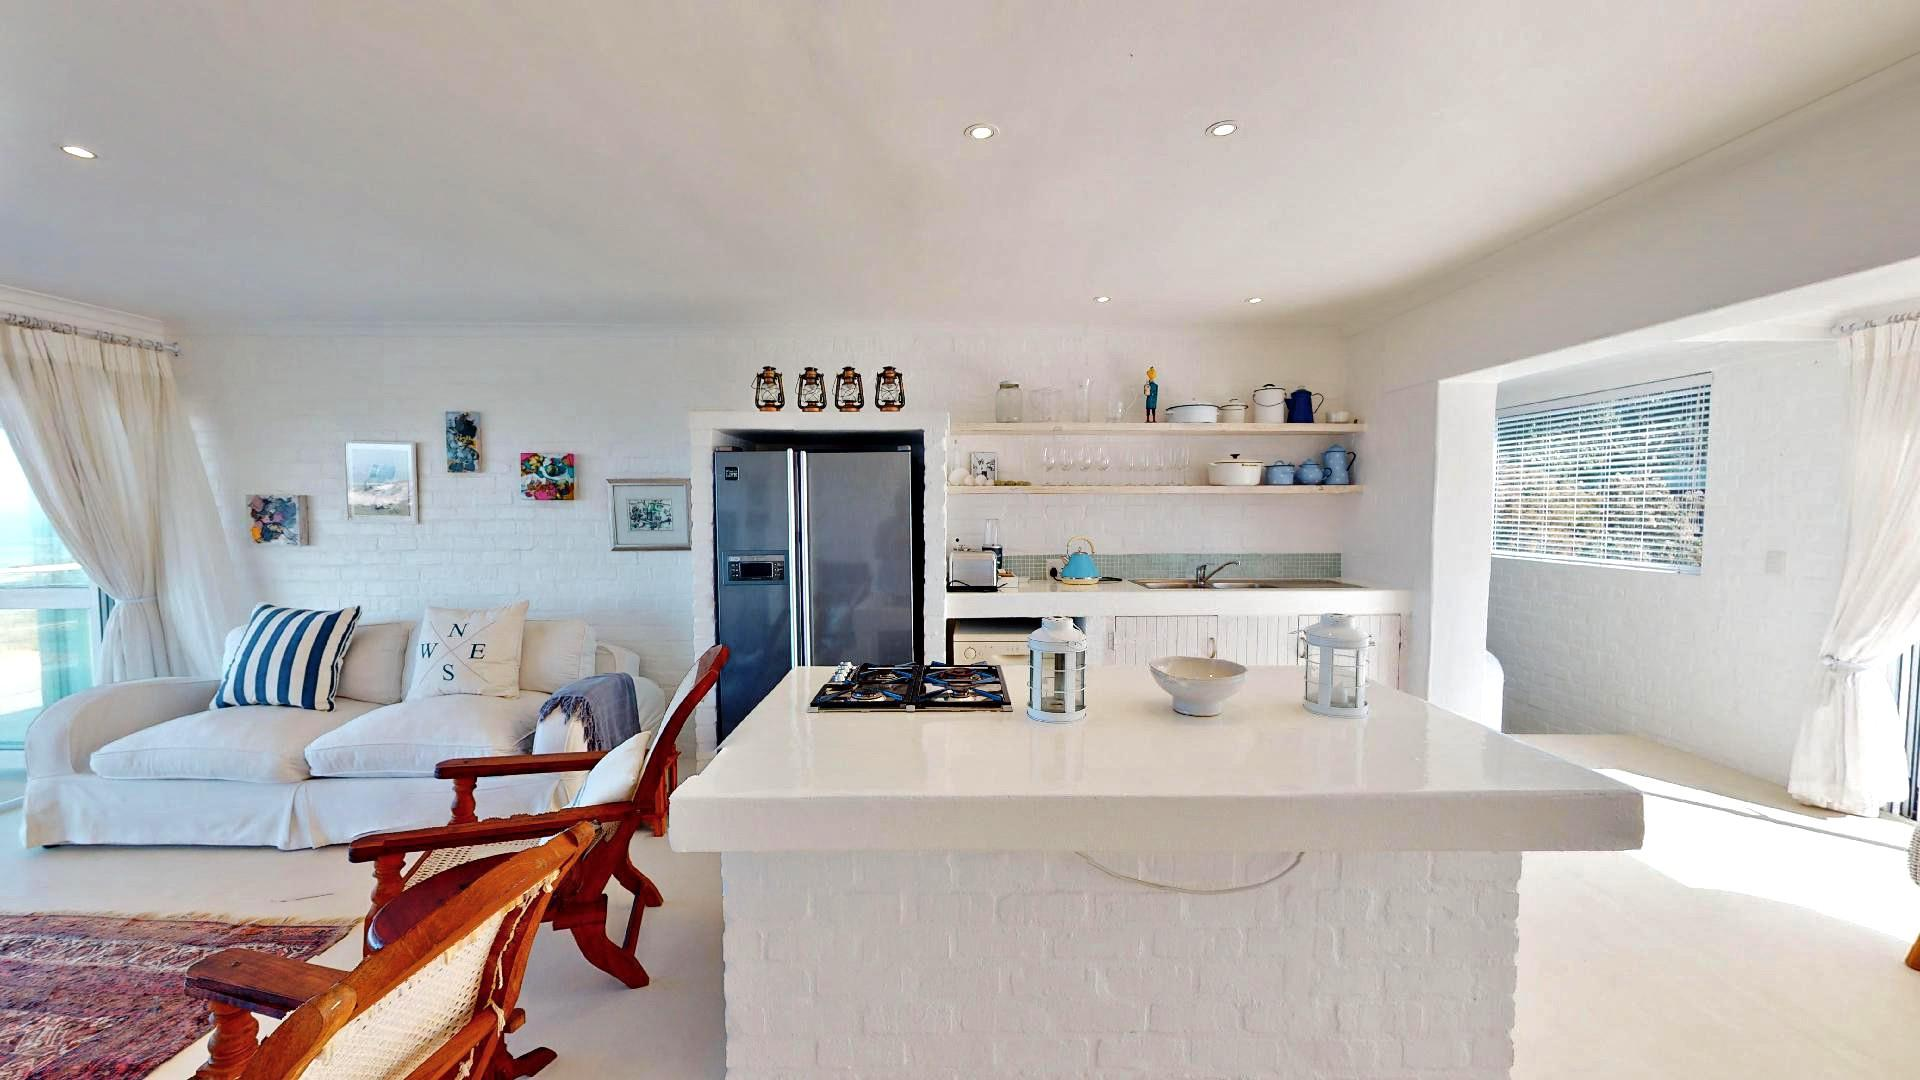 3 Bedroom House For Sale in Pearly Beach